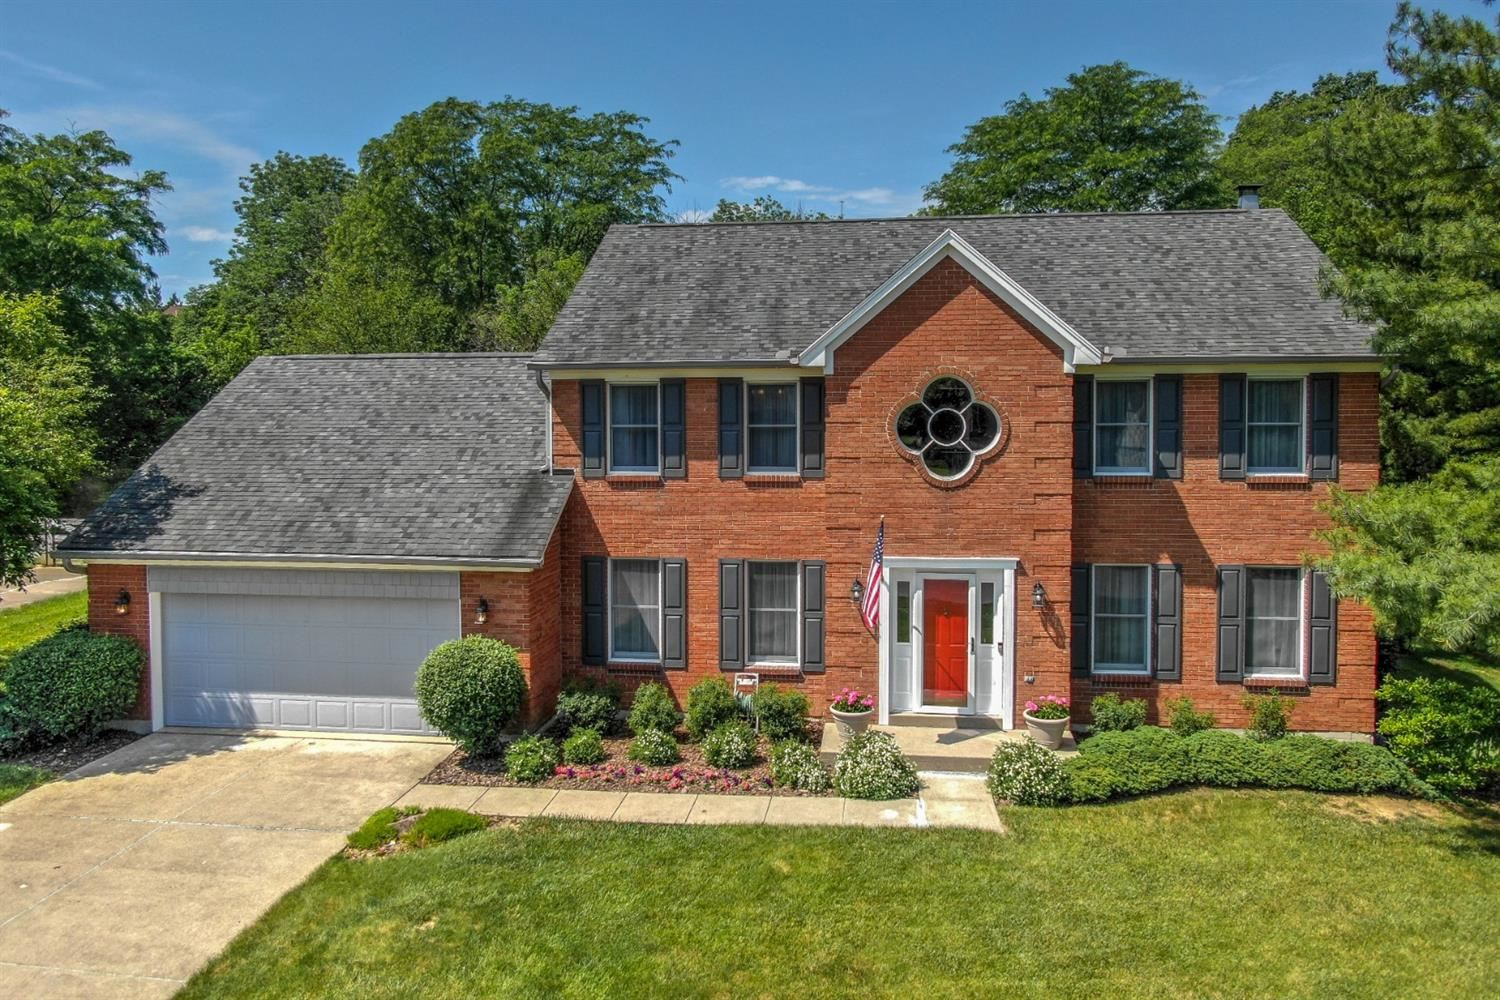 7289 Brushwood Drive, West Chester, OH 45069 - #: 1663234